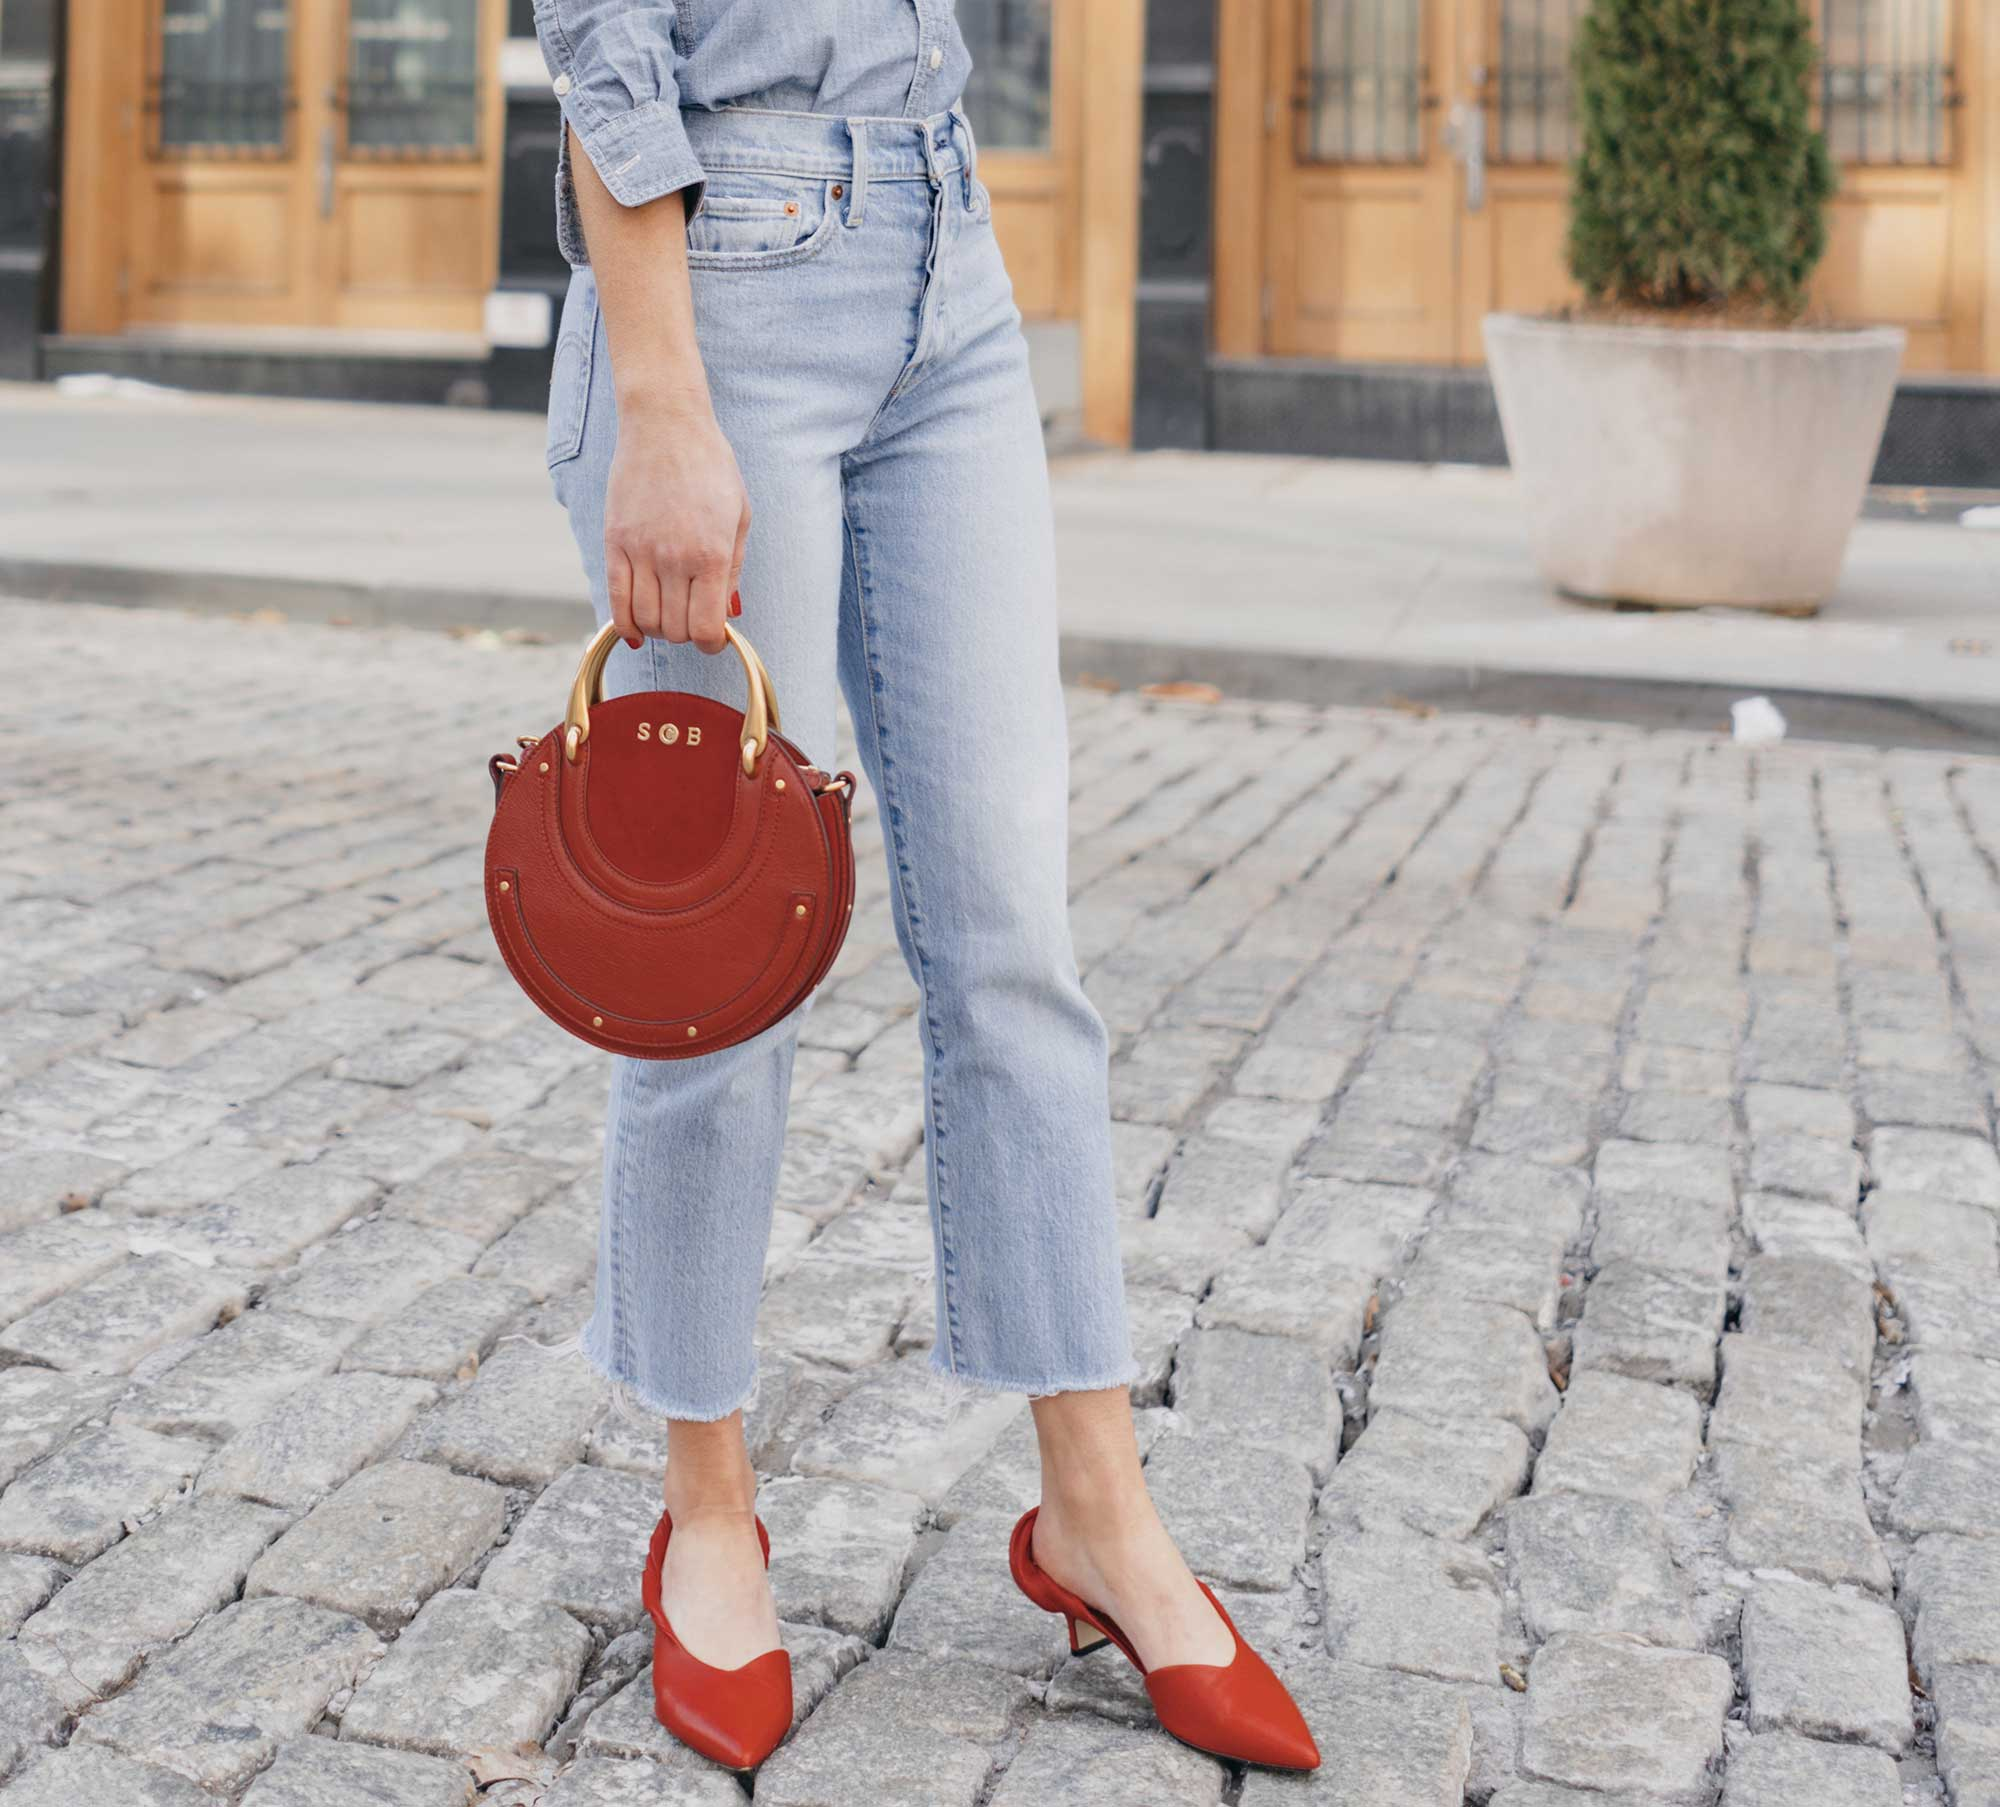 Madewell-Chambray-Boyfriend-Shirt--Levi's-Wedgie-High-Rise-Straight-Jeans-Chloe-Pixie-Leather-Crossbody-Bag-Sigerson-Morrison-Red-Slingback-Pump-1.jpg